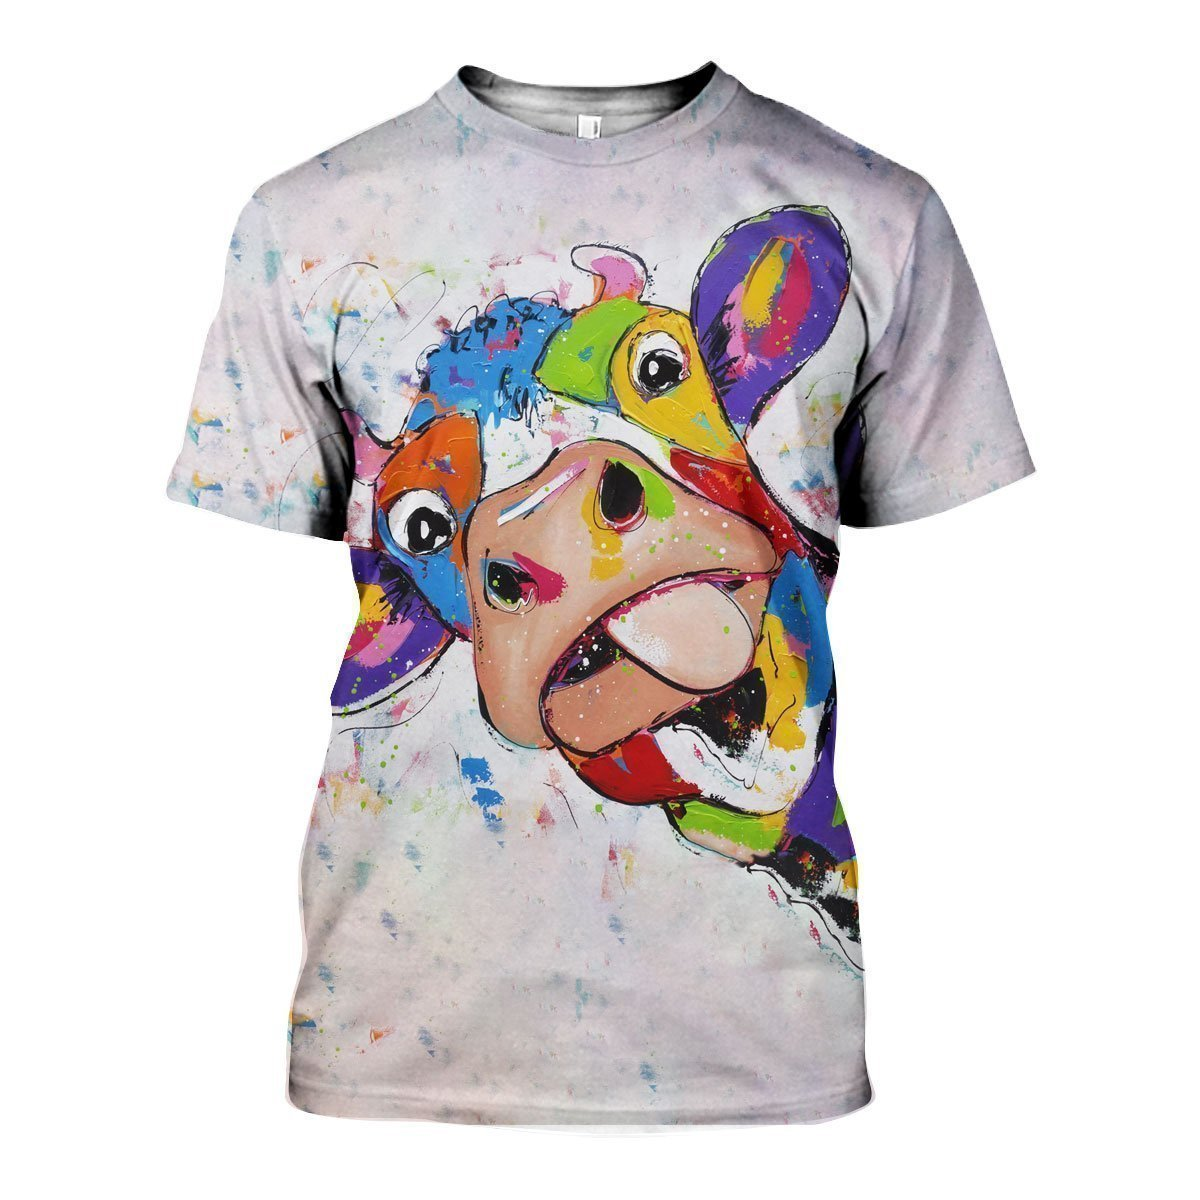 3D All Over Printed Oil Painting Cow Shirts and Shorts - Amaze Style™-Apparel